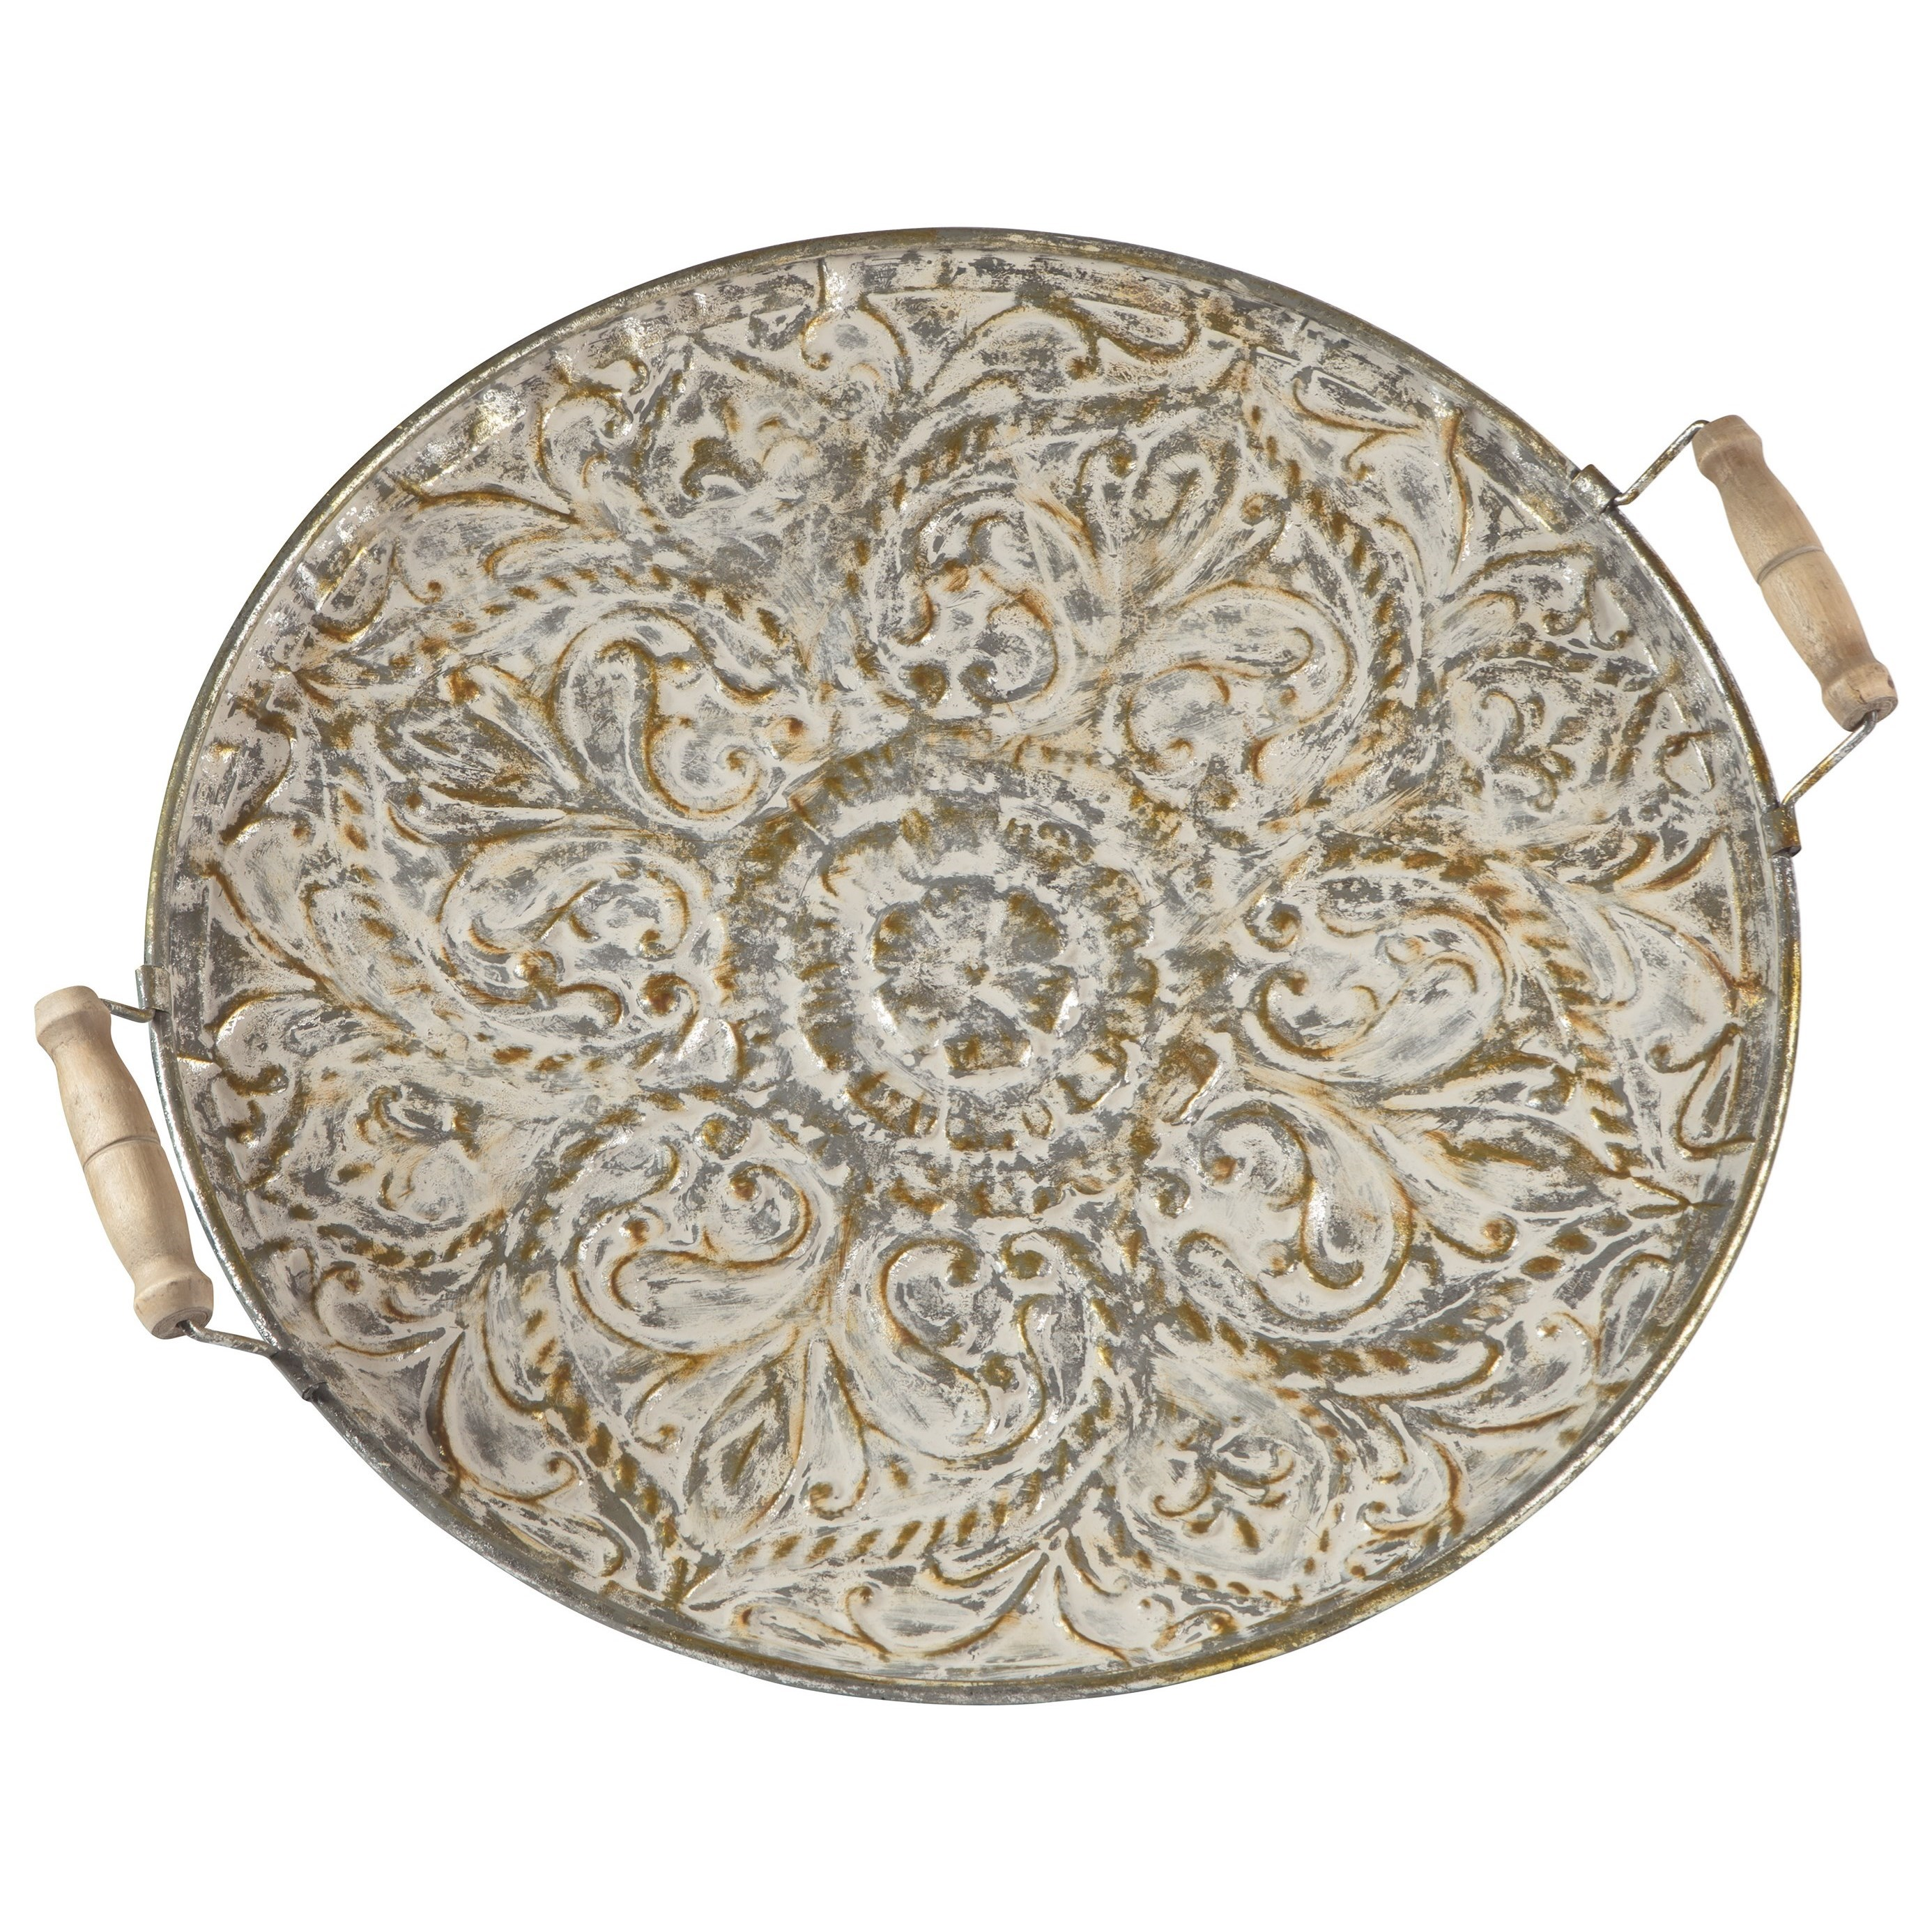 Accents Didina Cream/Gold Finish Tray by Ashley (Signature Design) at Johnny Janosik